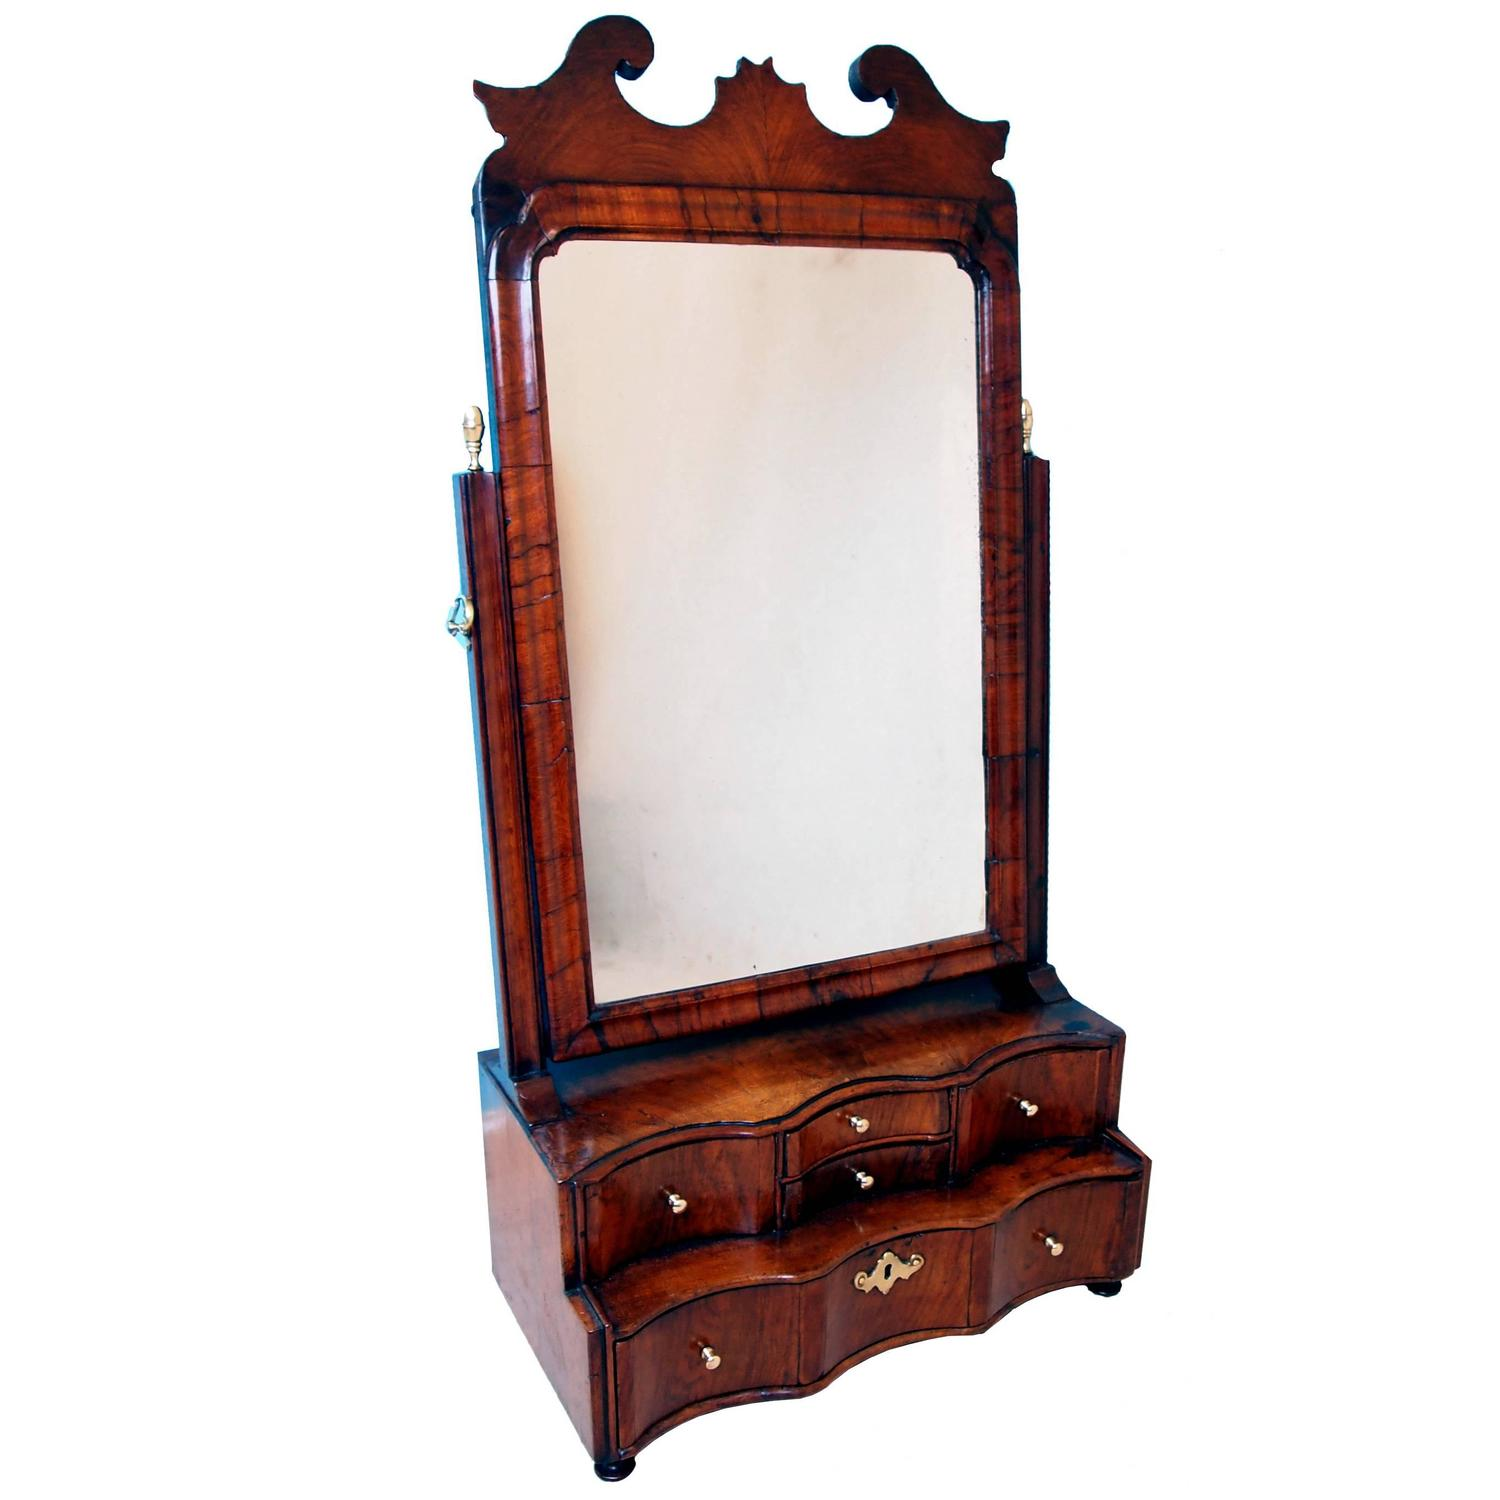 Antique georgian walnut dressing table mirror at stdibs